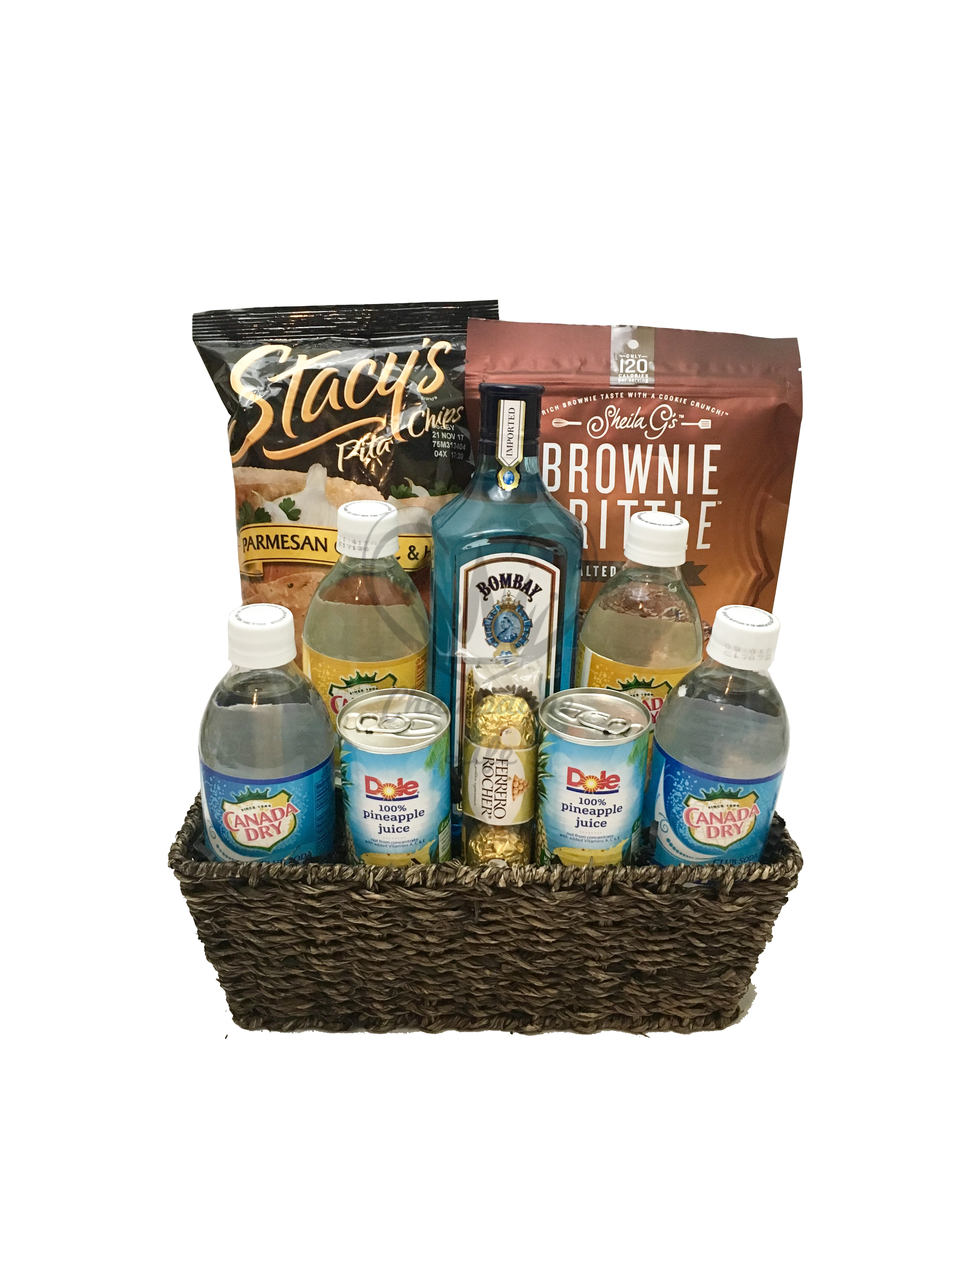 The Bombay Sapphire Gift Basket Is Available For Same Day Delivery In Las Vegas NV Martini Baskets Birthday And More Buy Today At